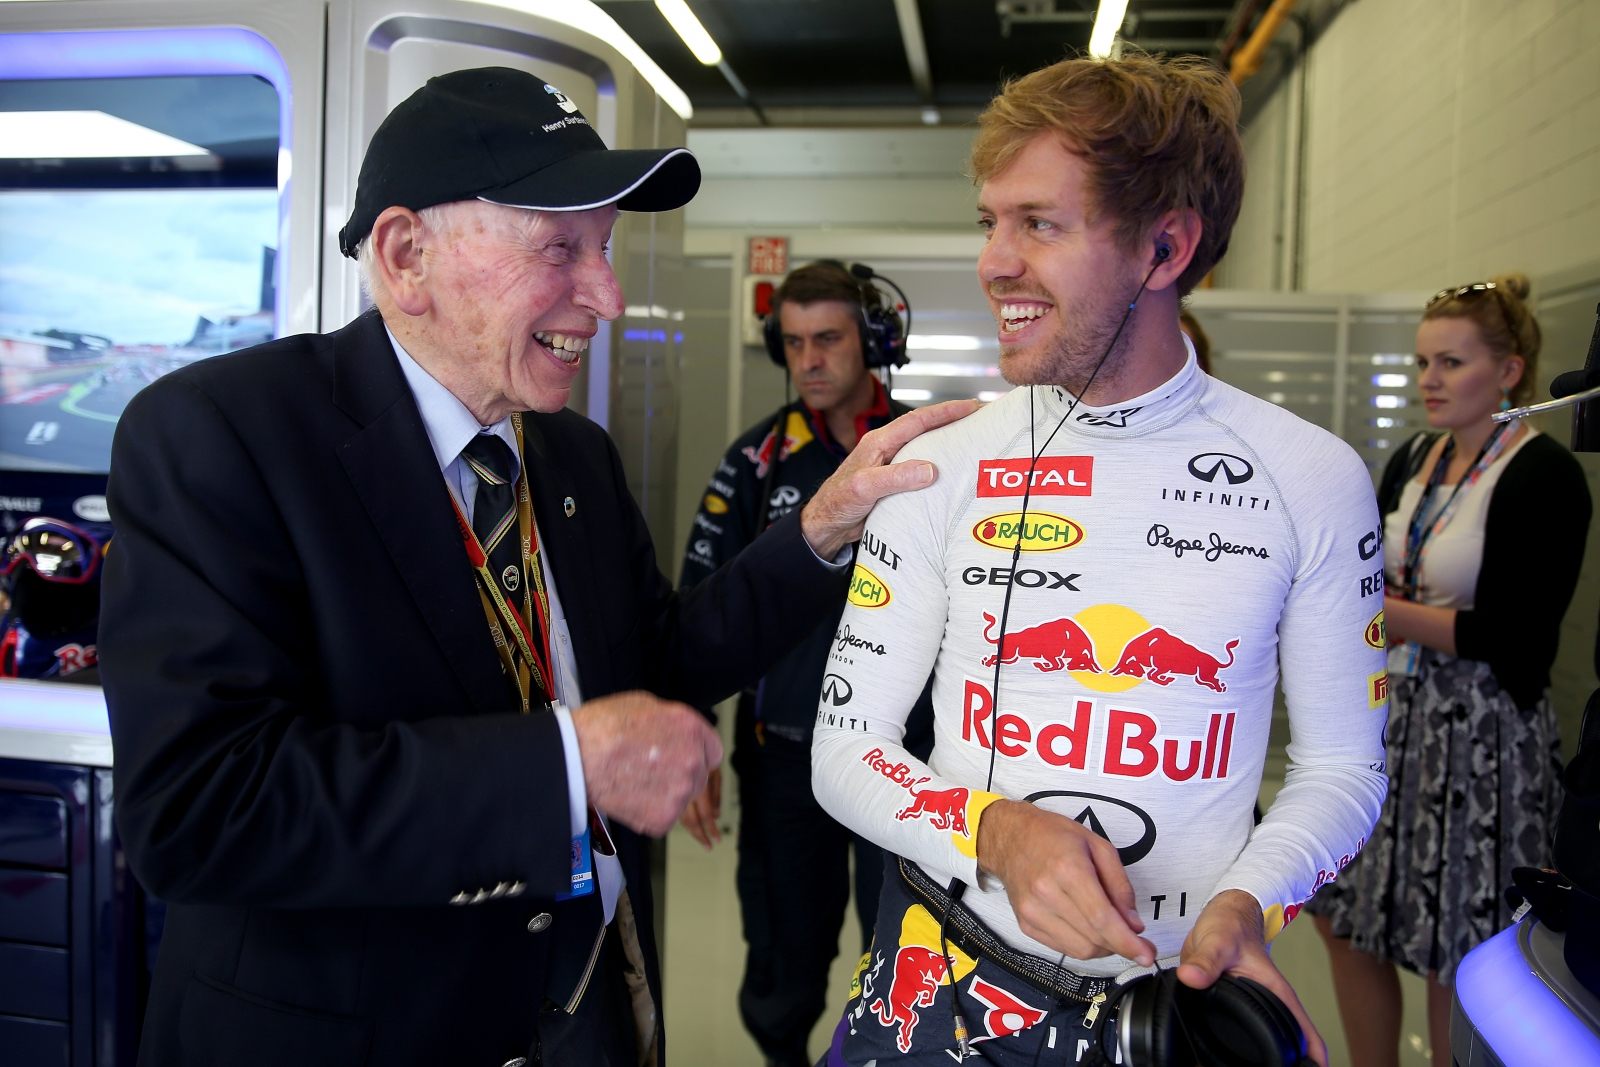 Racing Legend John Surtees CBE Passes Away